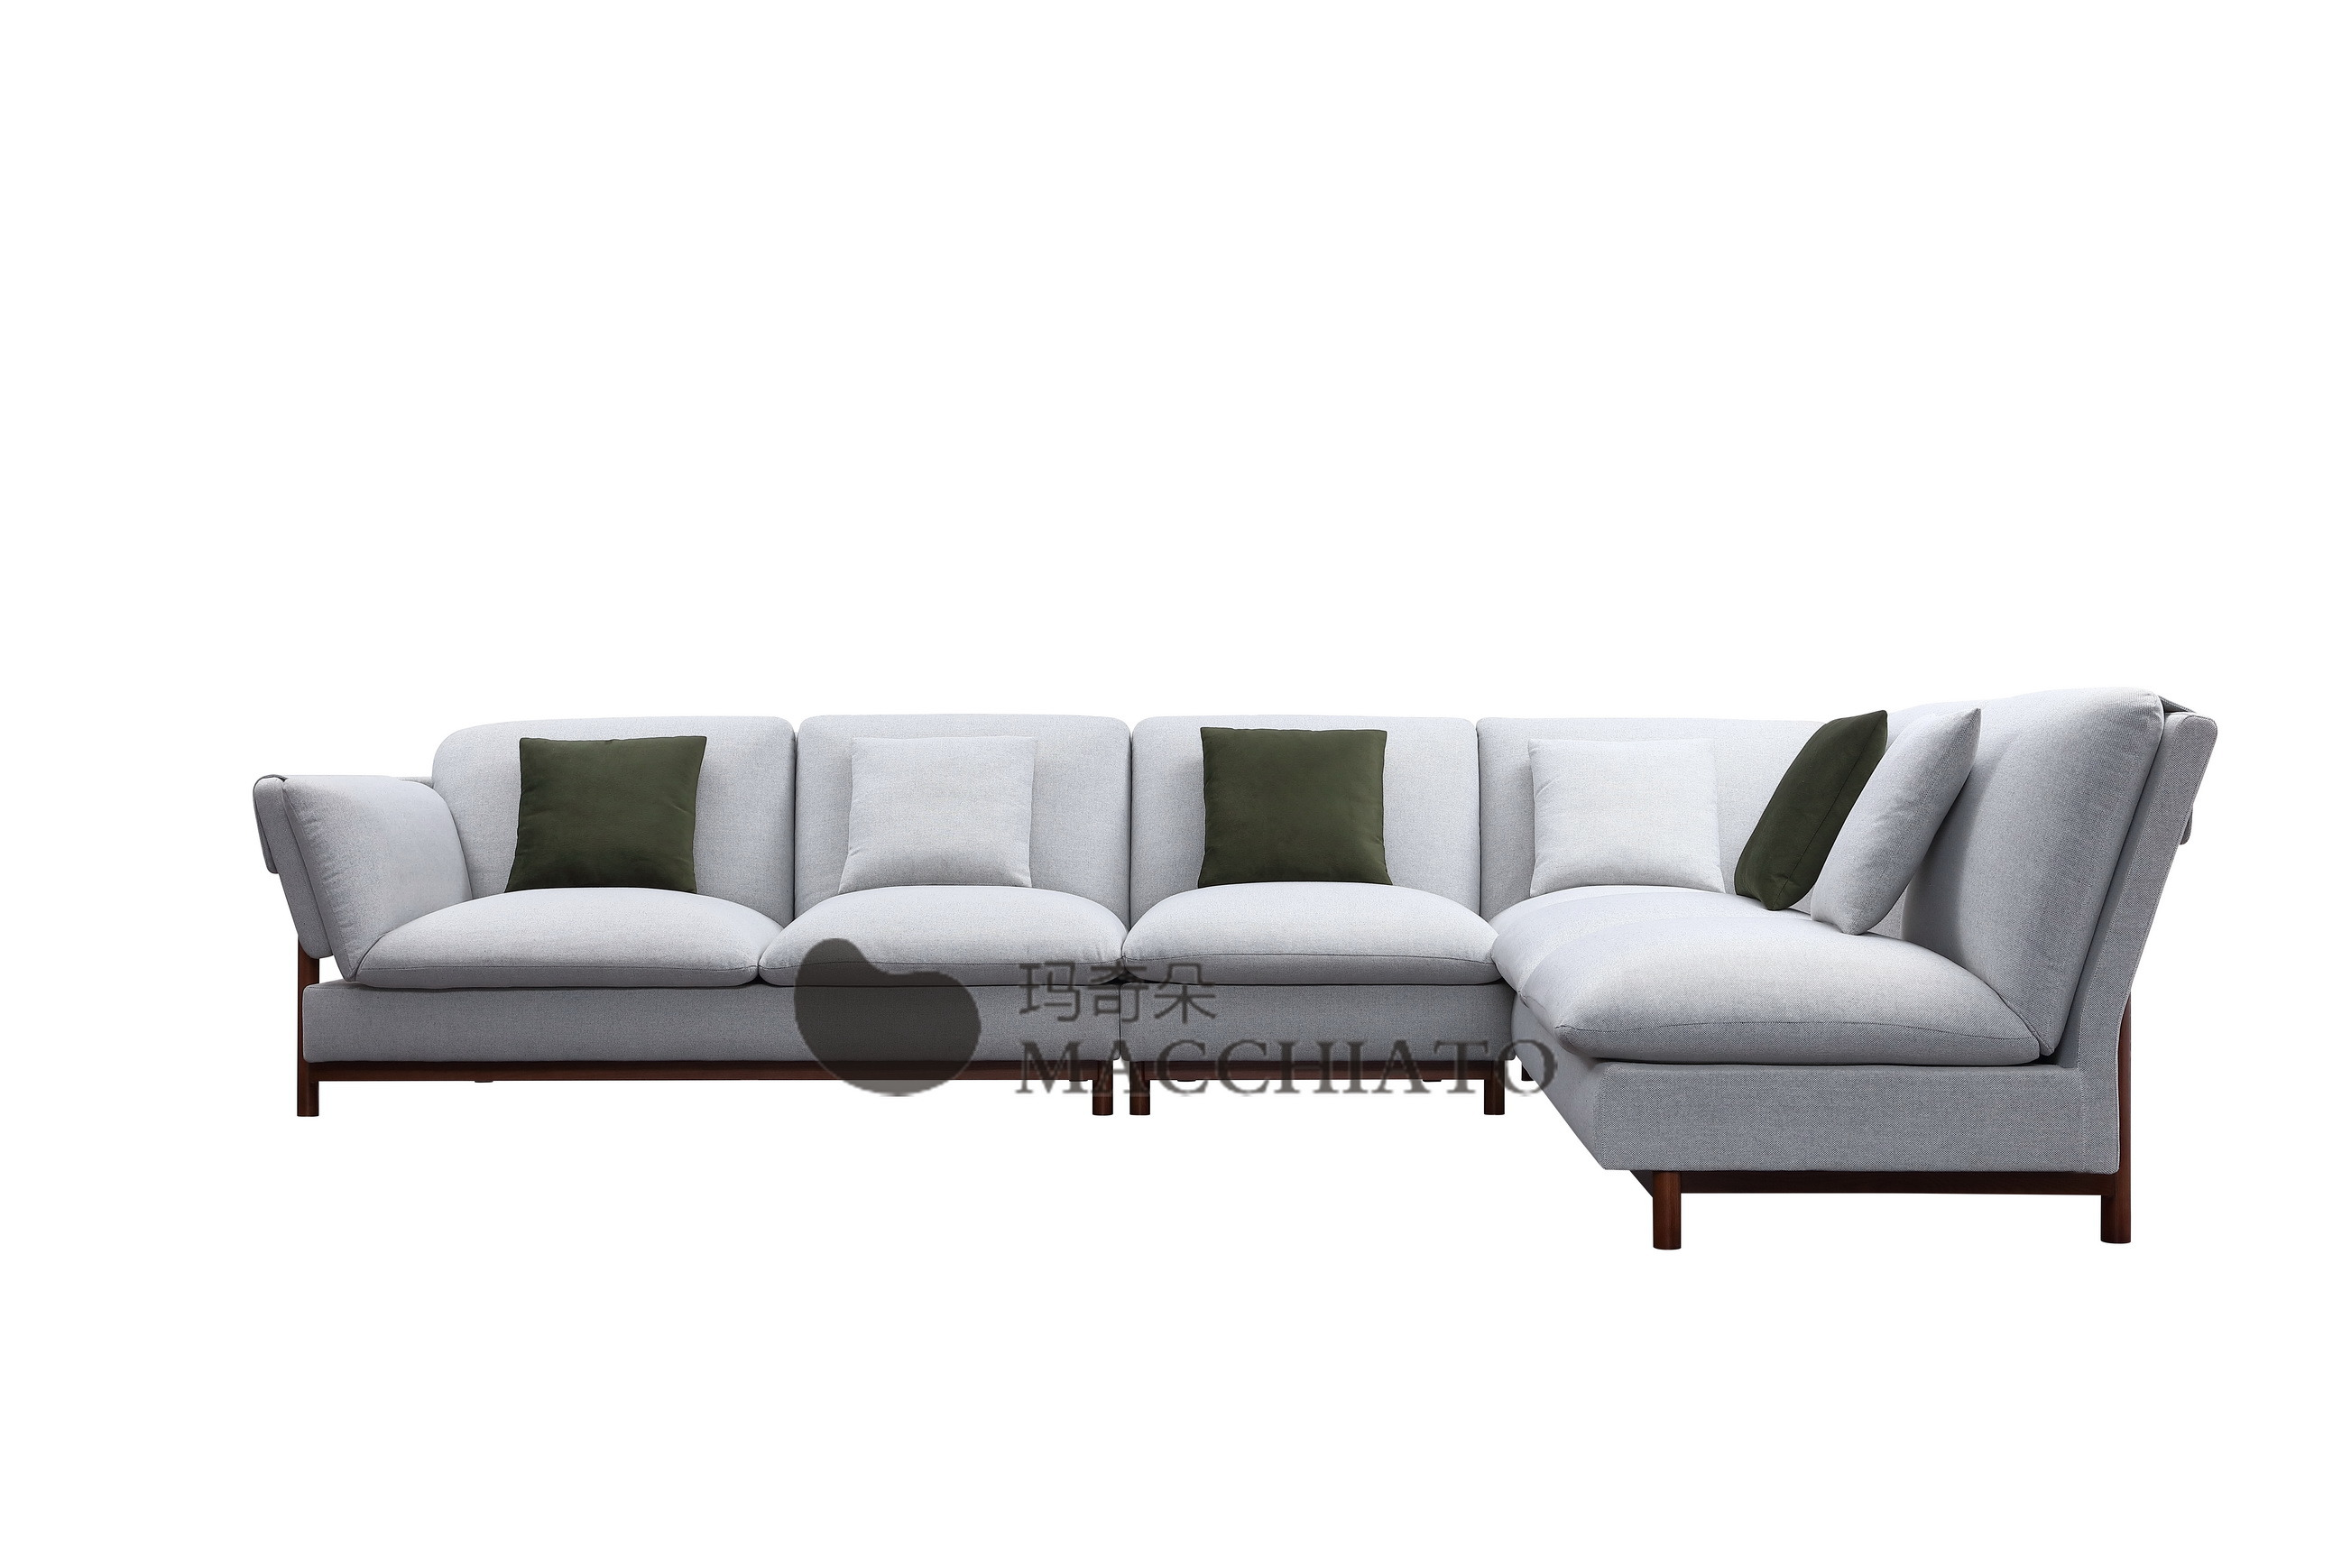 High Quality Perfect Design Modern Furniture /Italy Design Sofa /Modern Sofa